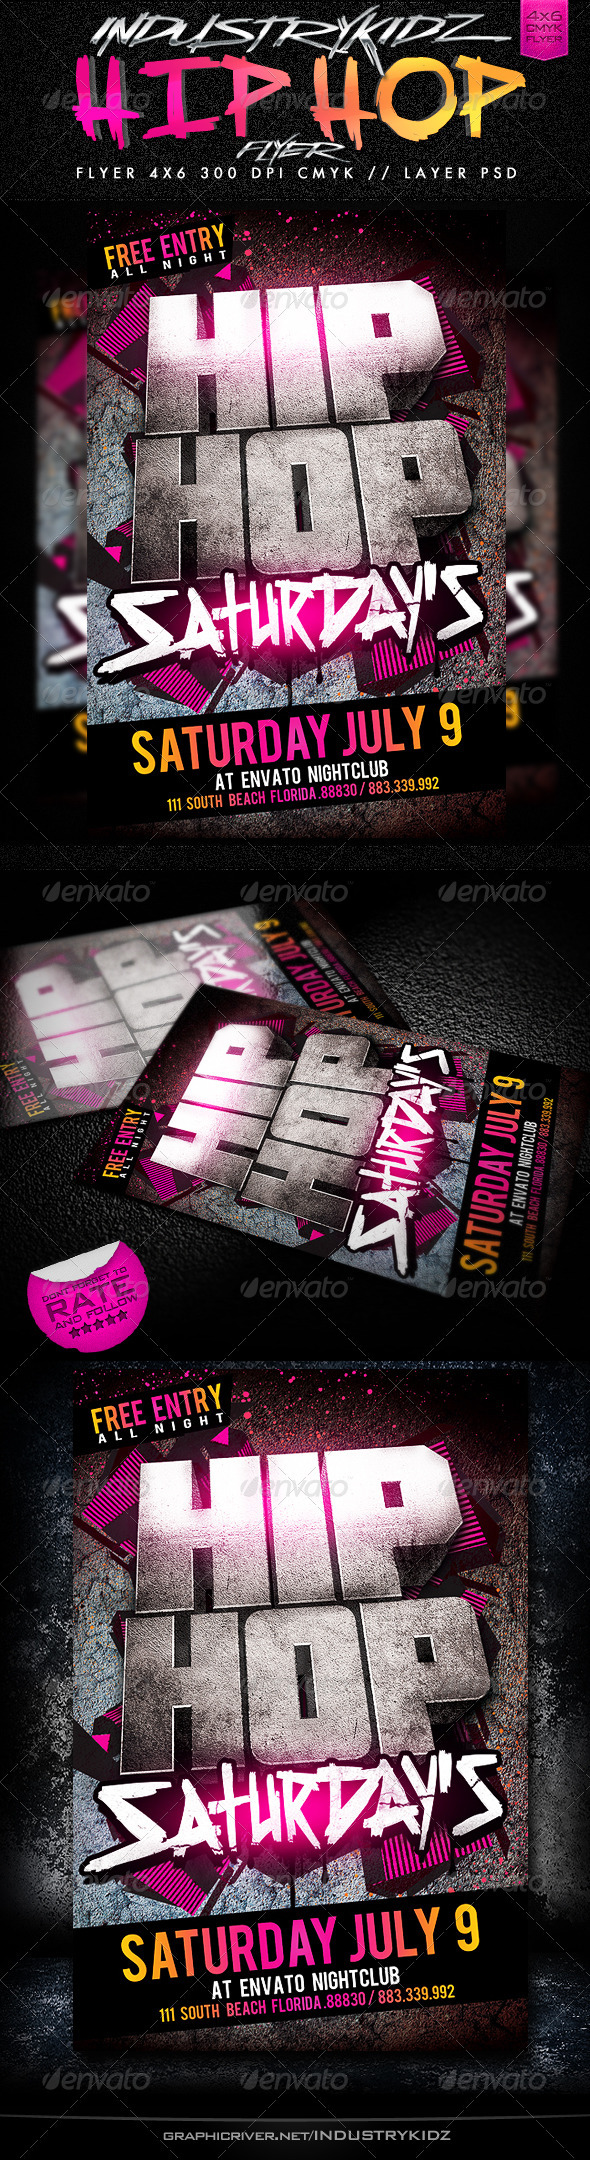 Hip Hop Saturdays Flyer - Events Flyers